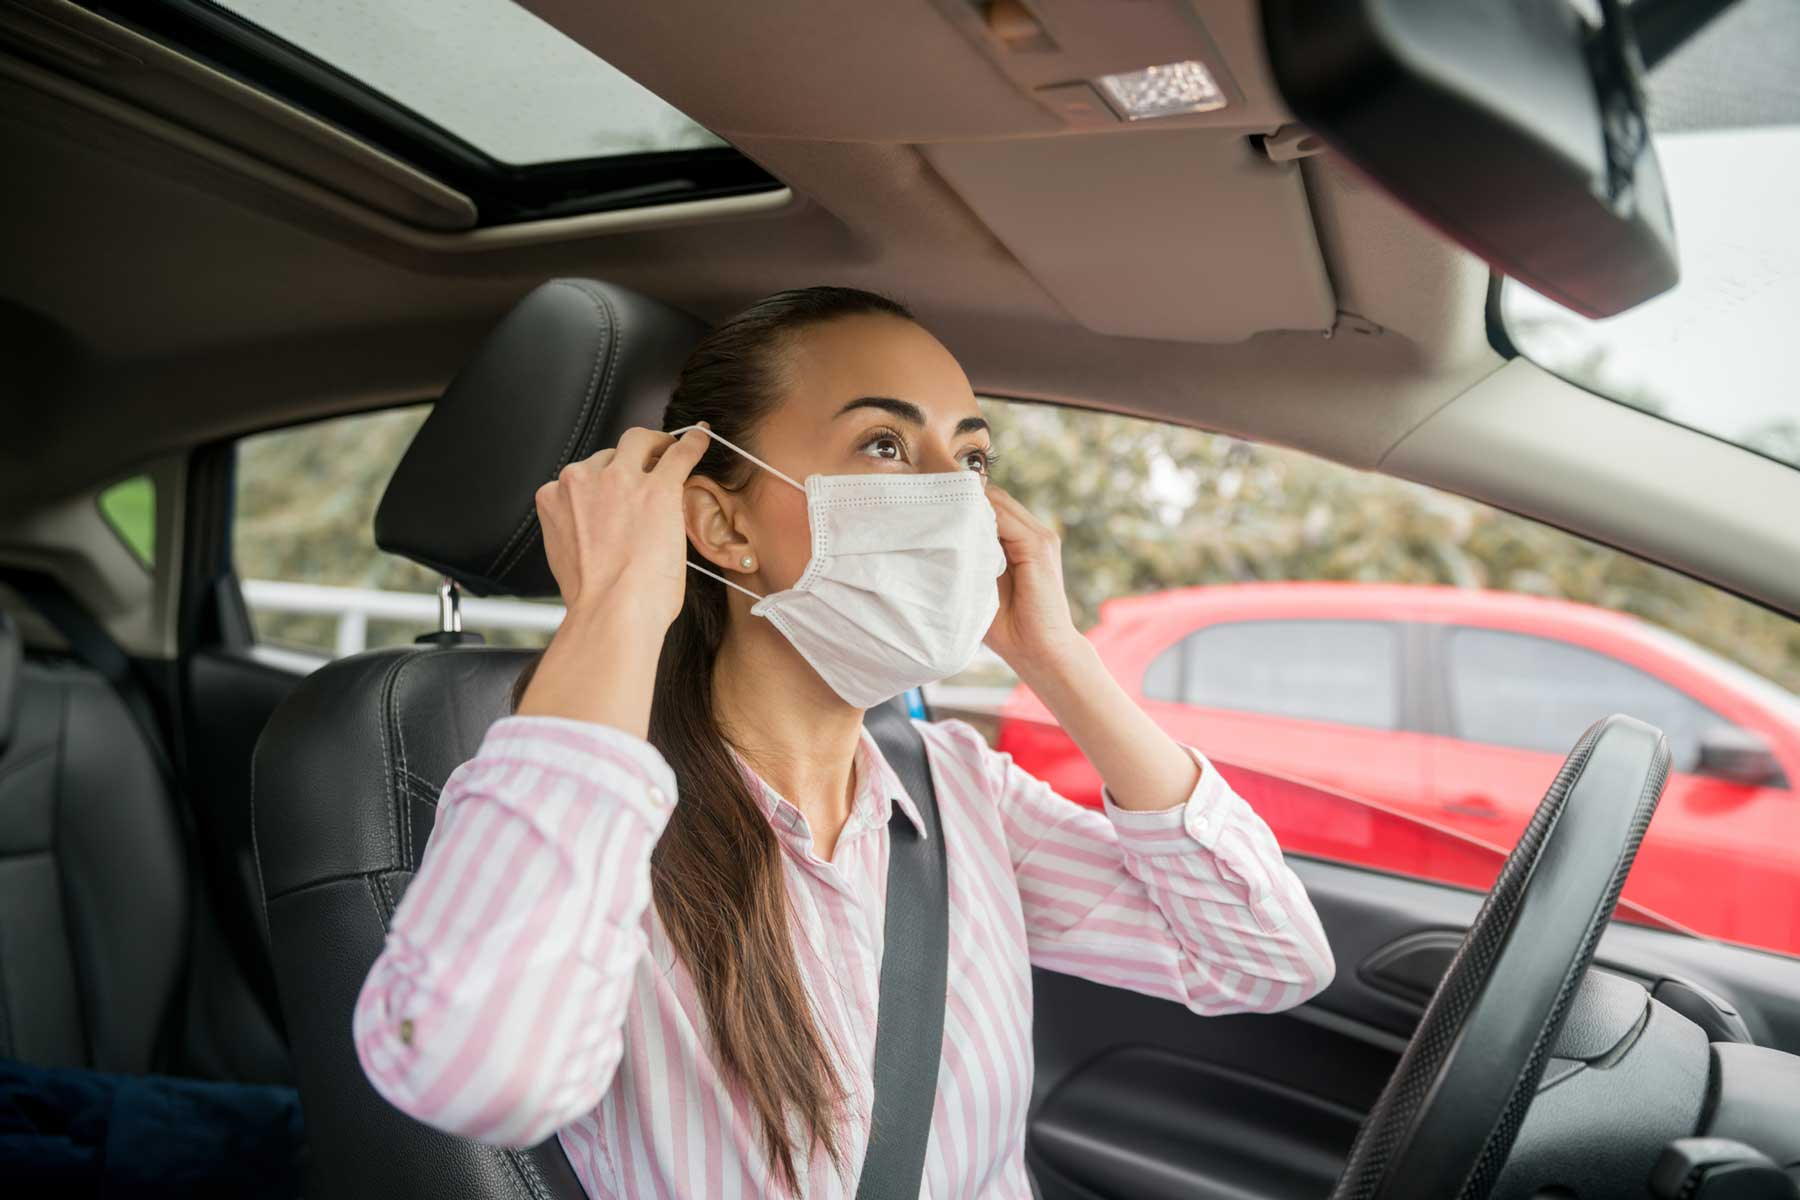 Woman putting on a facemask while in a car